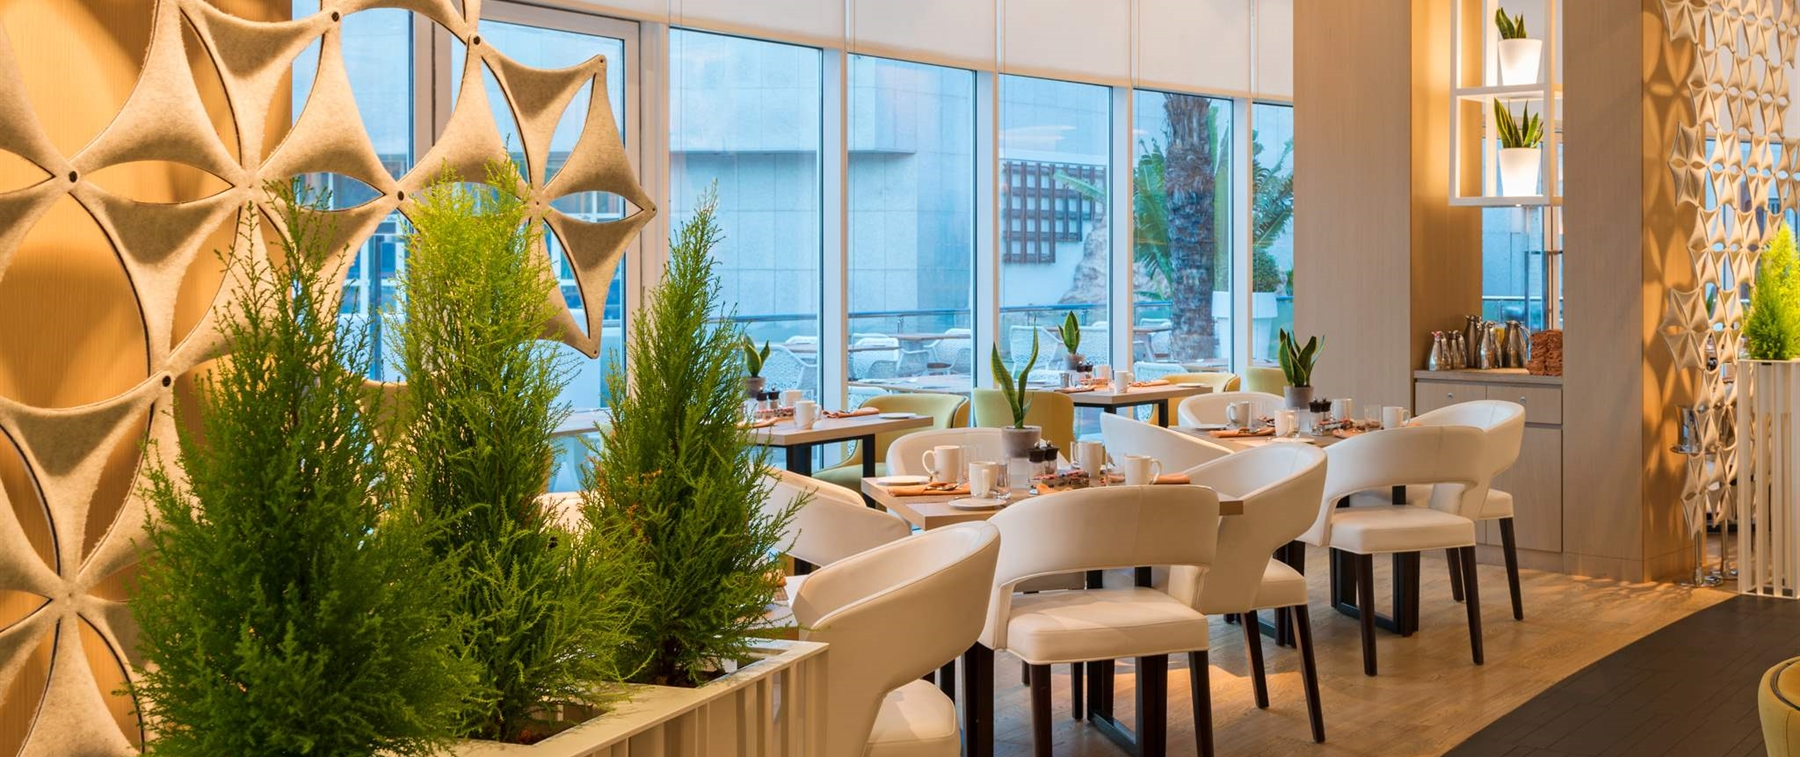 Experience one of the best all day dining restaurants in all of Abu Dhabi